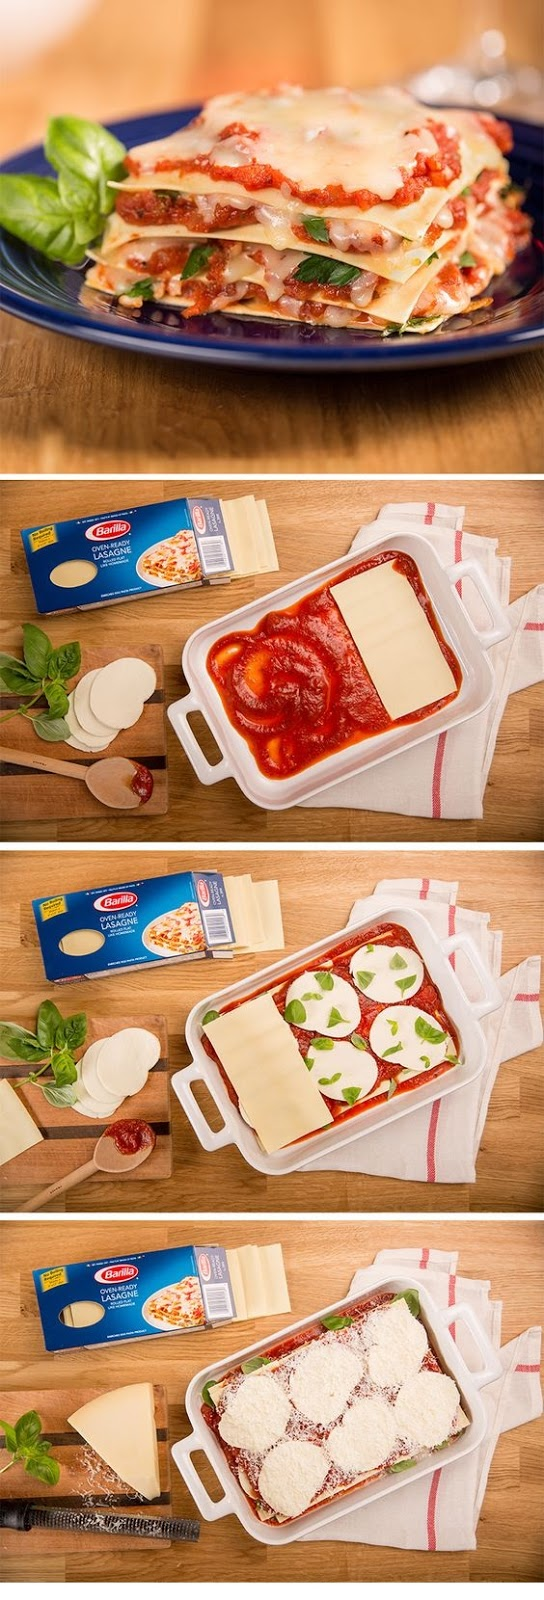 Classic No Boil Oven Ready Lasagna Recipe